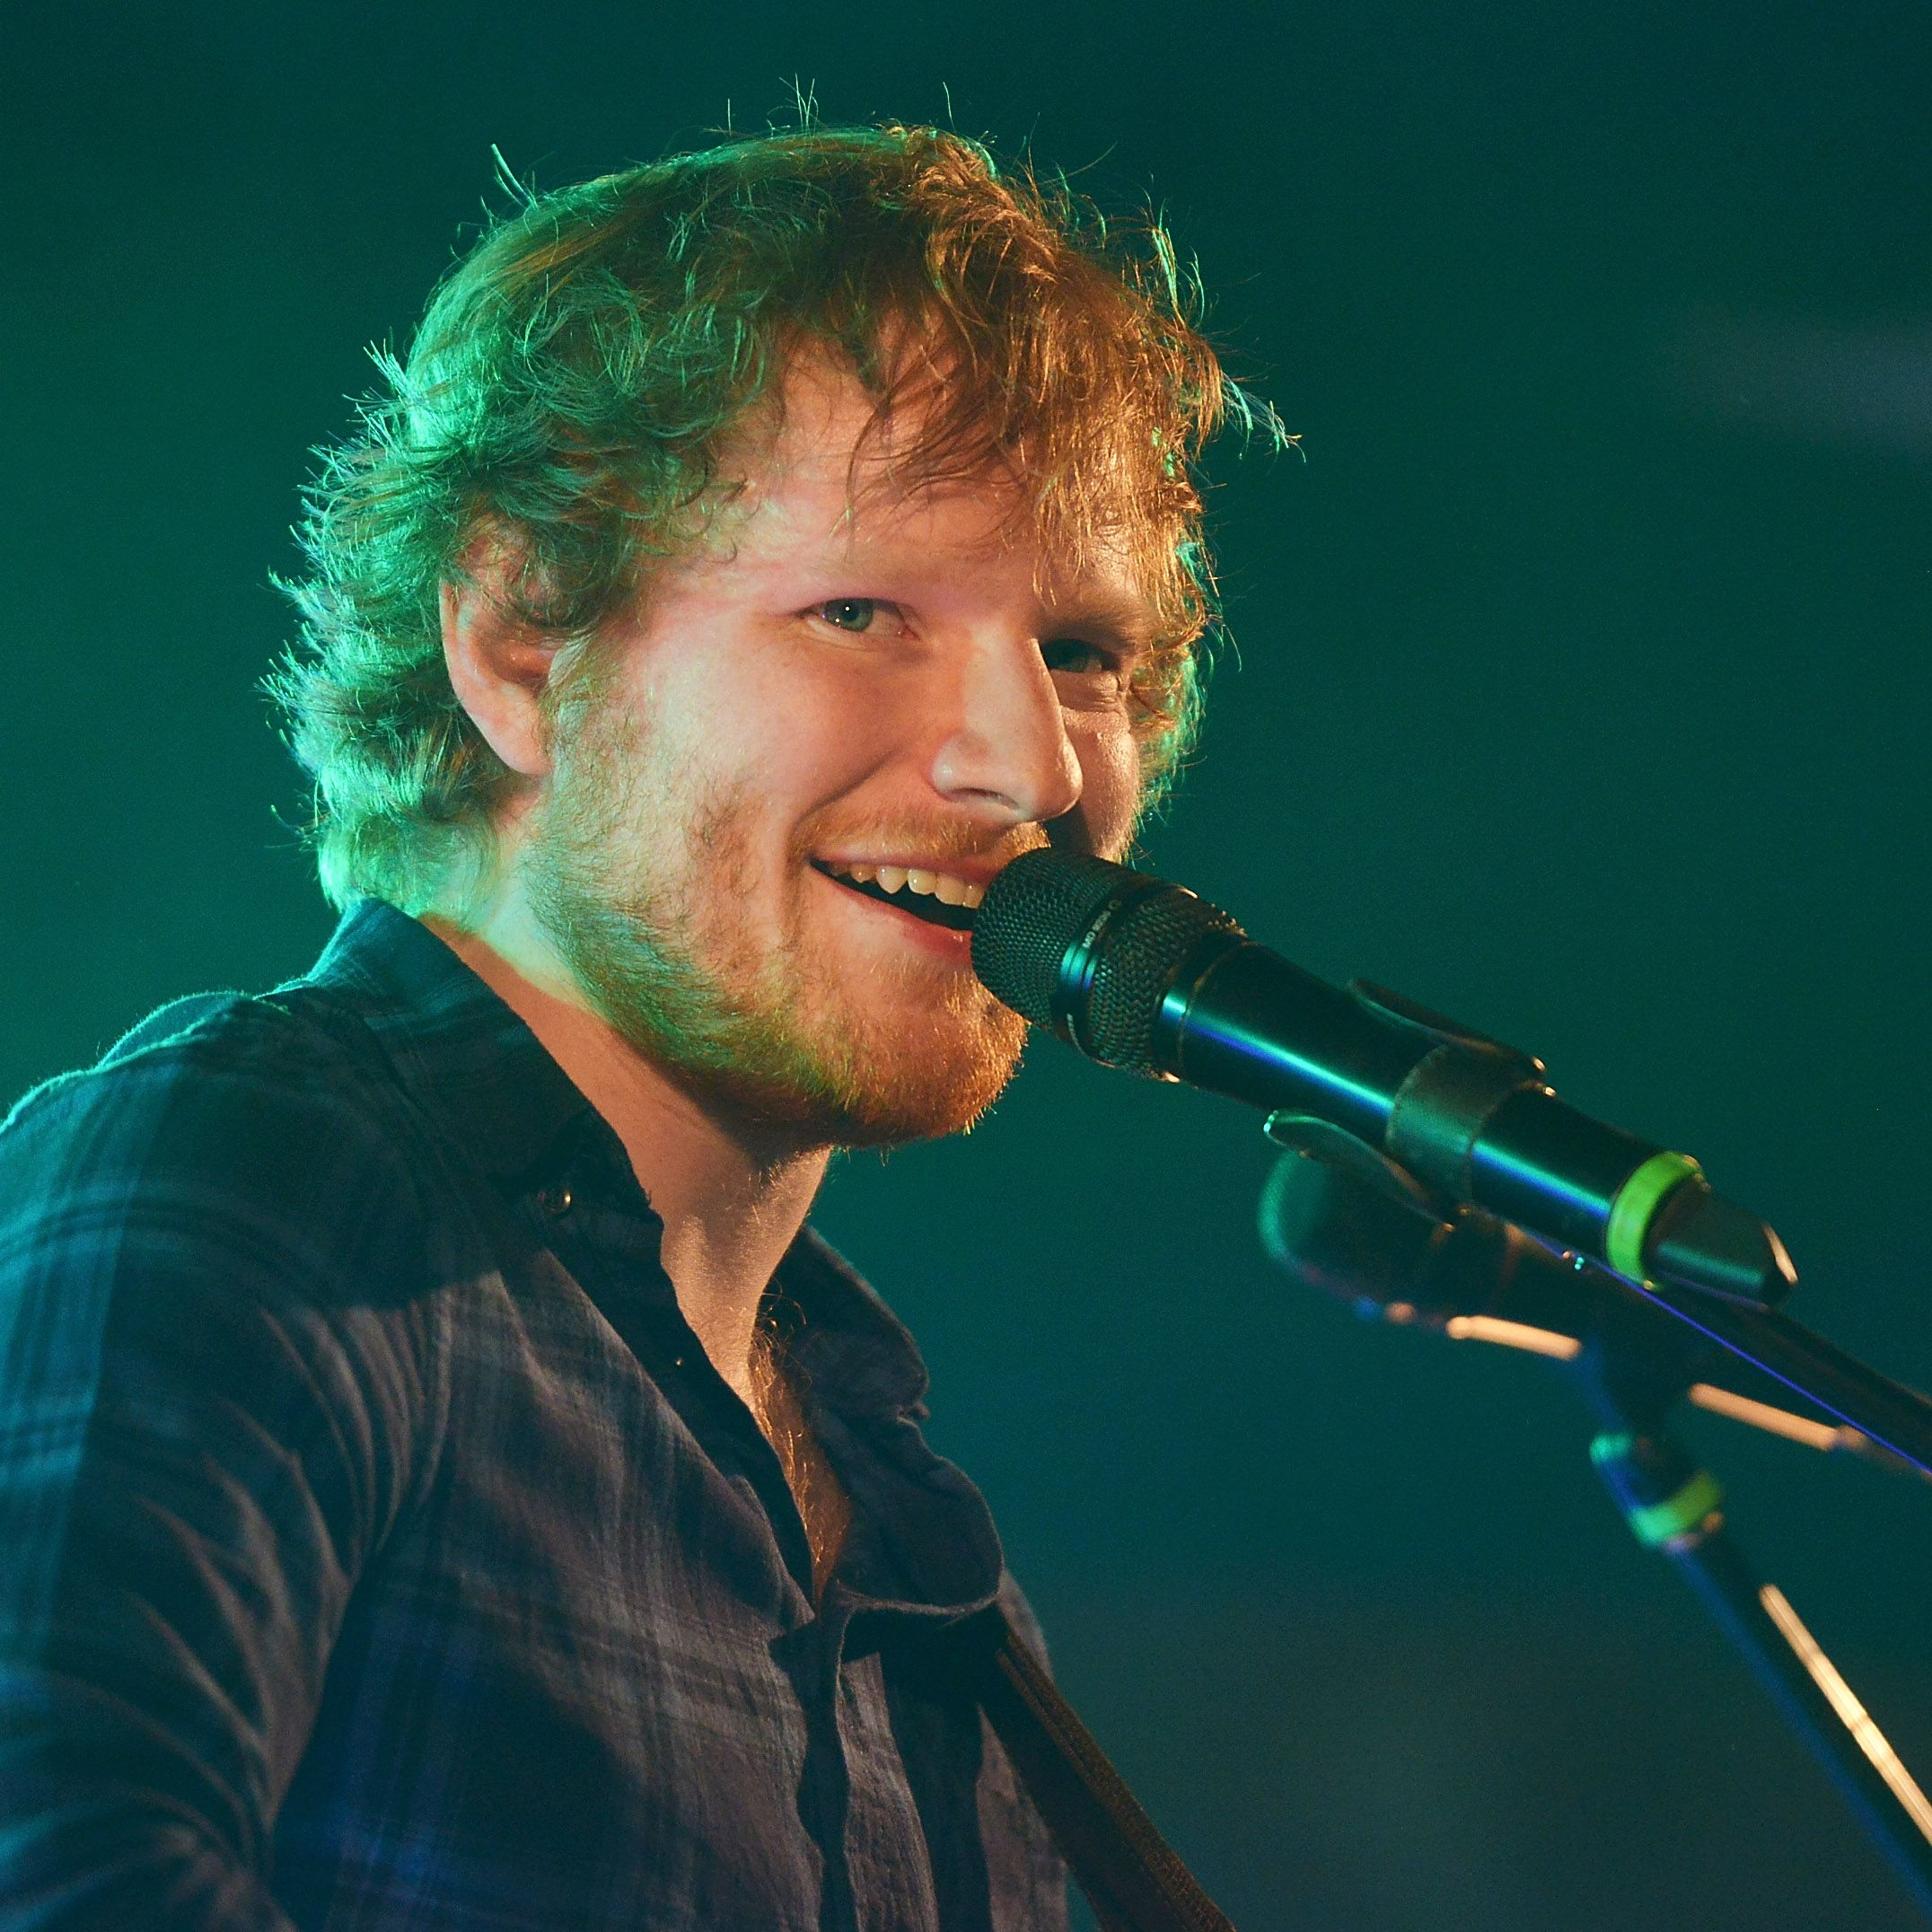 Ed Sheeran Is Opening A Bar, Restaurant, And Music Venue In London